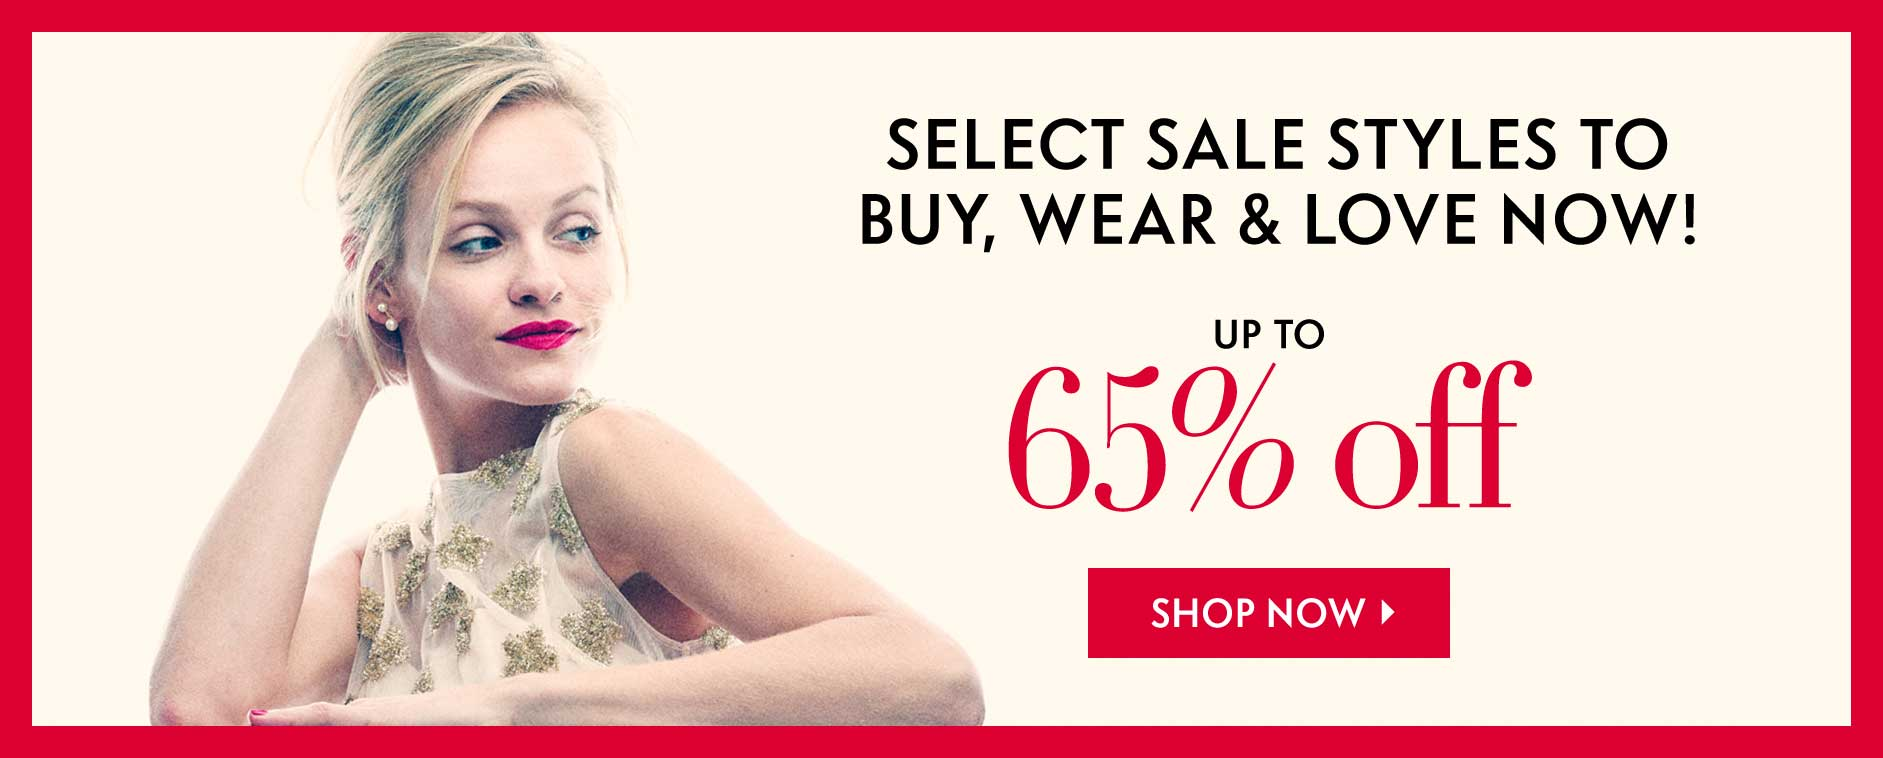 Up TO 65% Off - Select sale styles to buy, wear & love now!